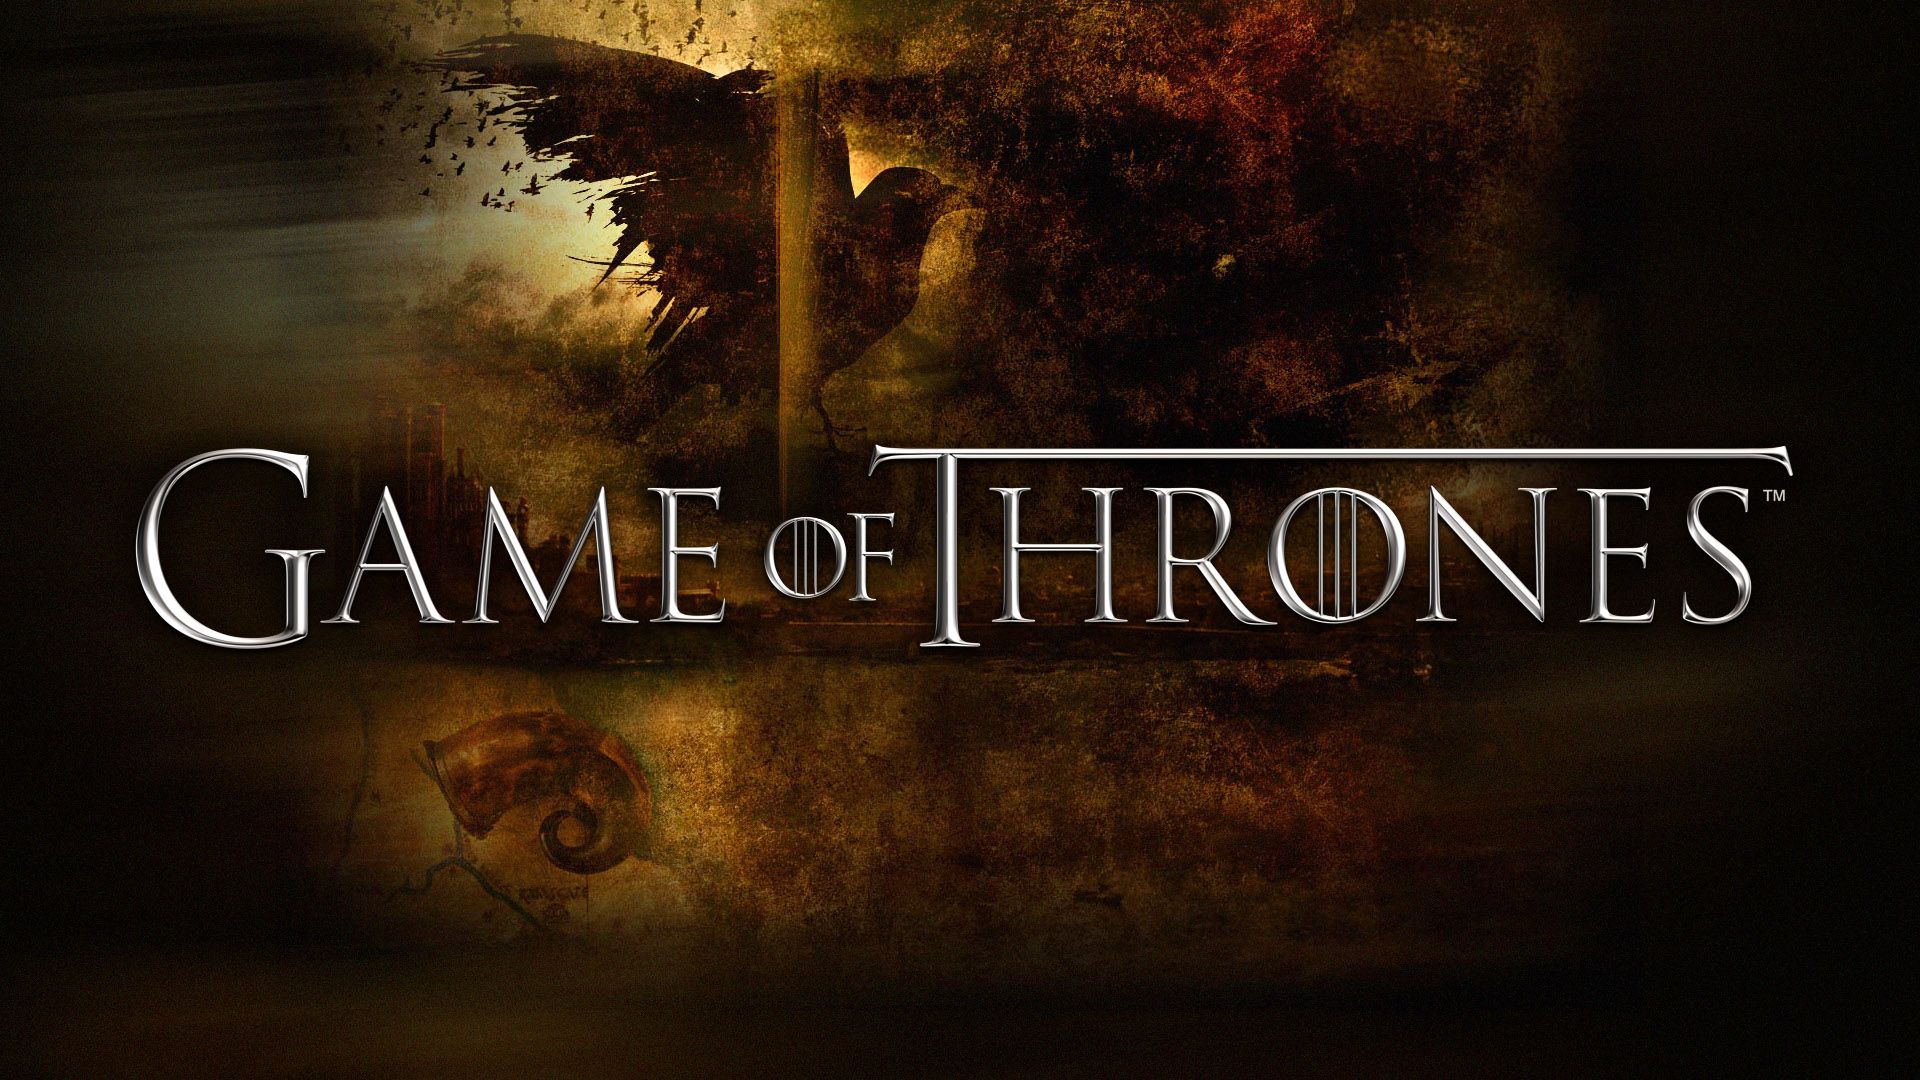 Game Of Thrones Season 3 Episode 9 Will Air June 2 Game Of Thrones Online Game Of Thrones Theme Watch Game Of Thrones